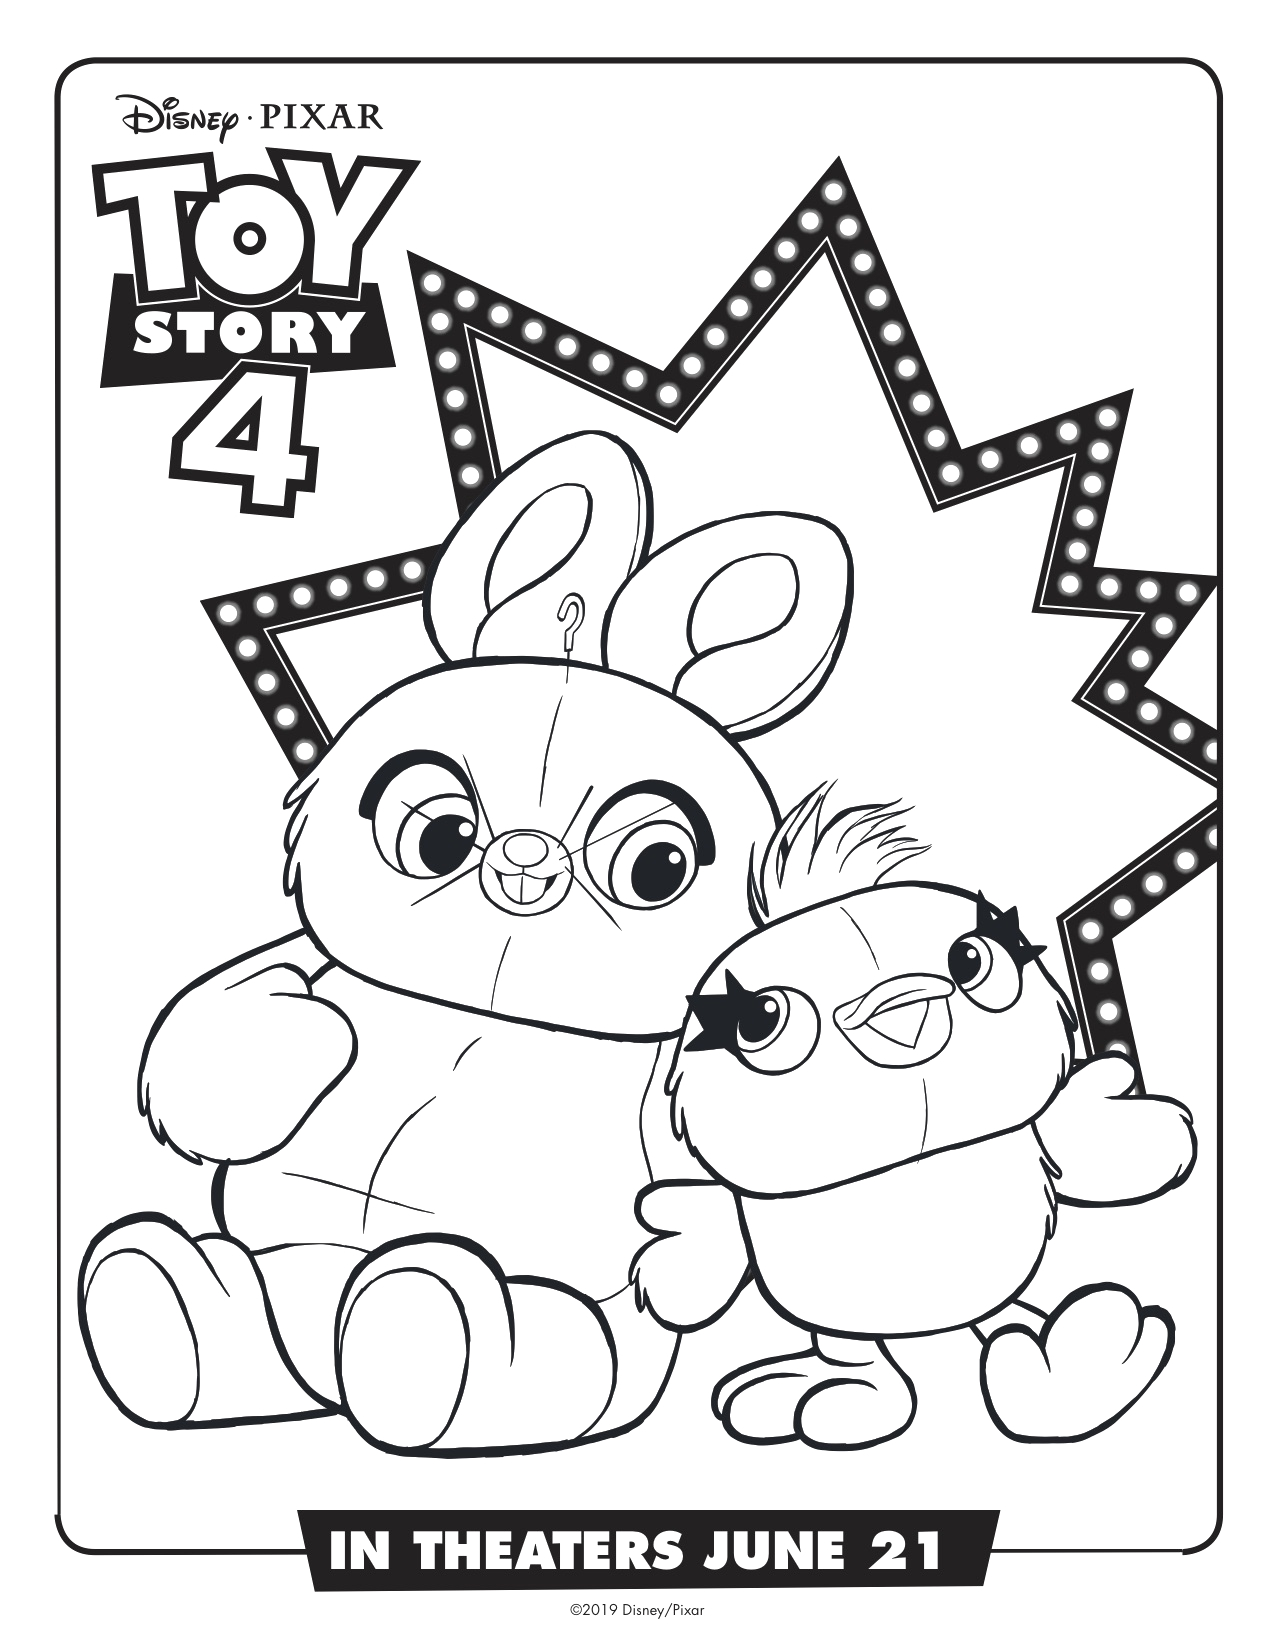 Bunny and Ducky toy Story 4 Coloring Pages toy Story 4 Ducky and Bunny Printable Coloring Page Simply